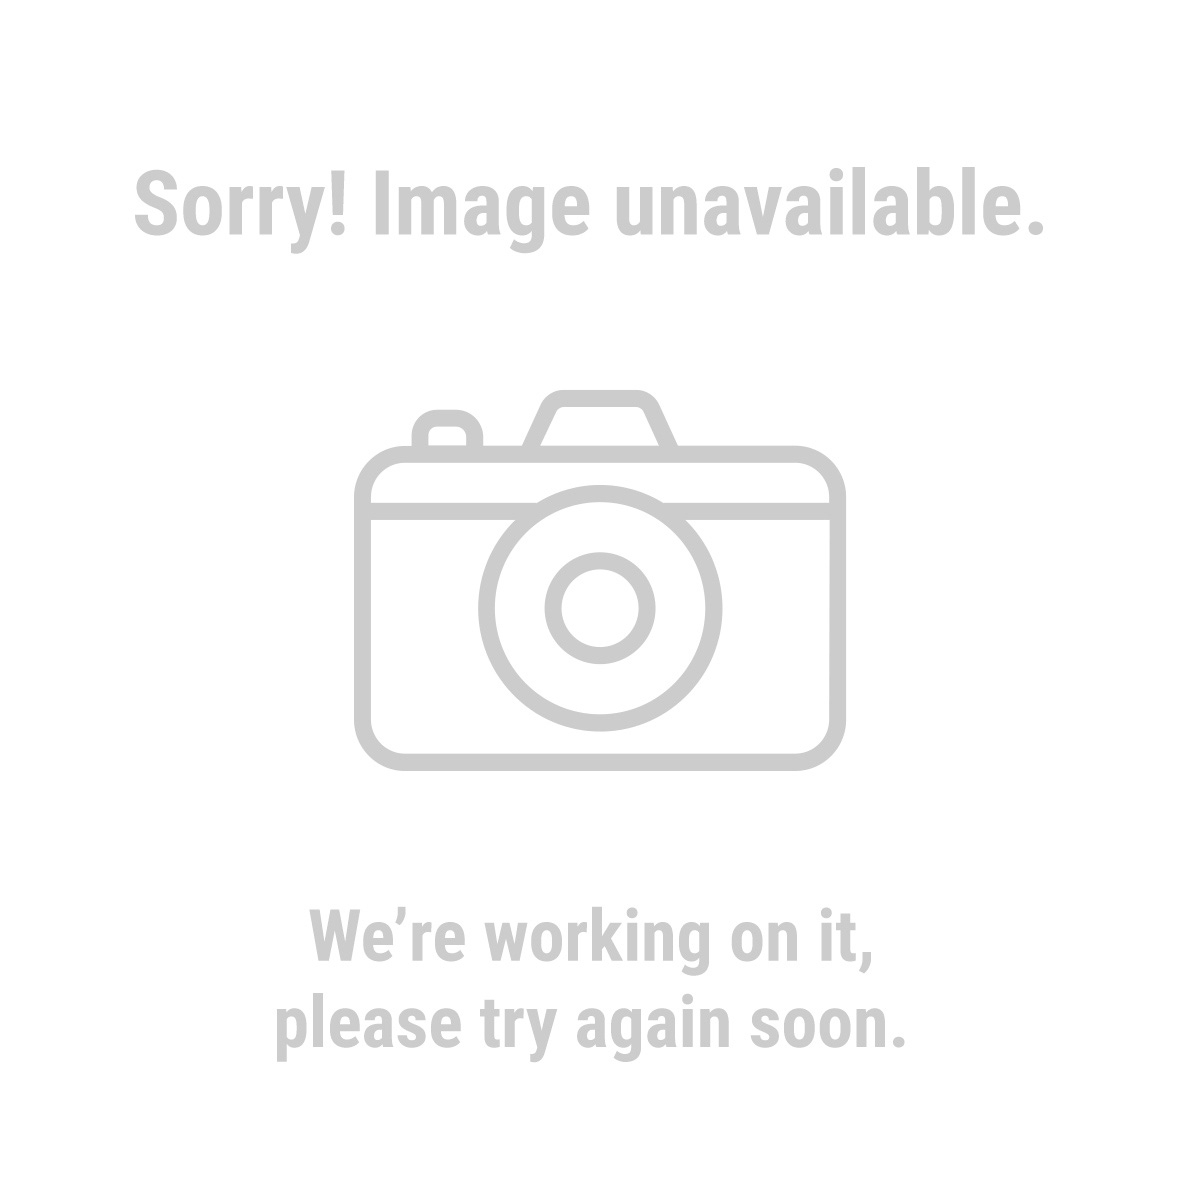 Of Torque Port lbs 12 Volt Electric 1//2 Impact Wrench Roadside Repair 150 ft